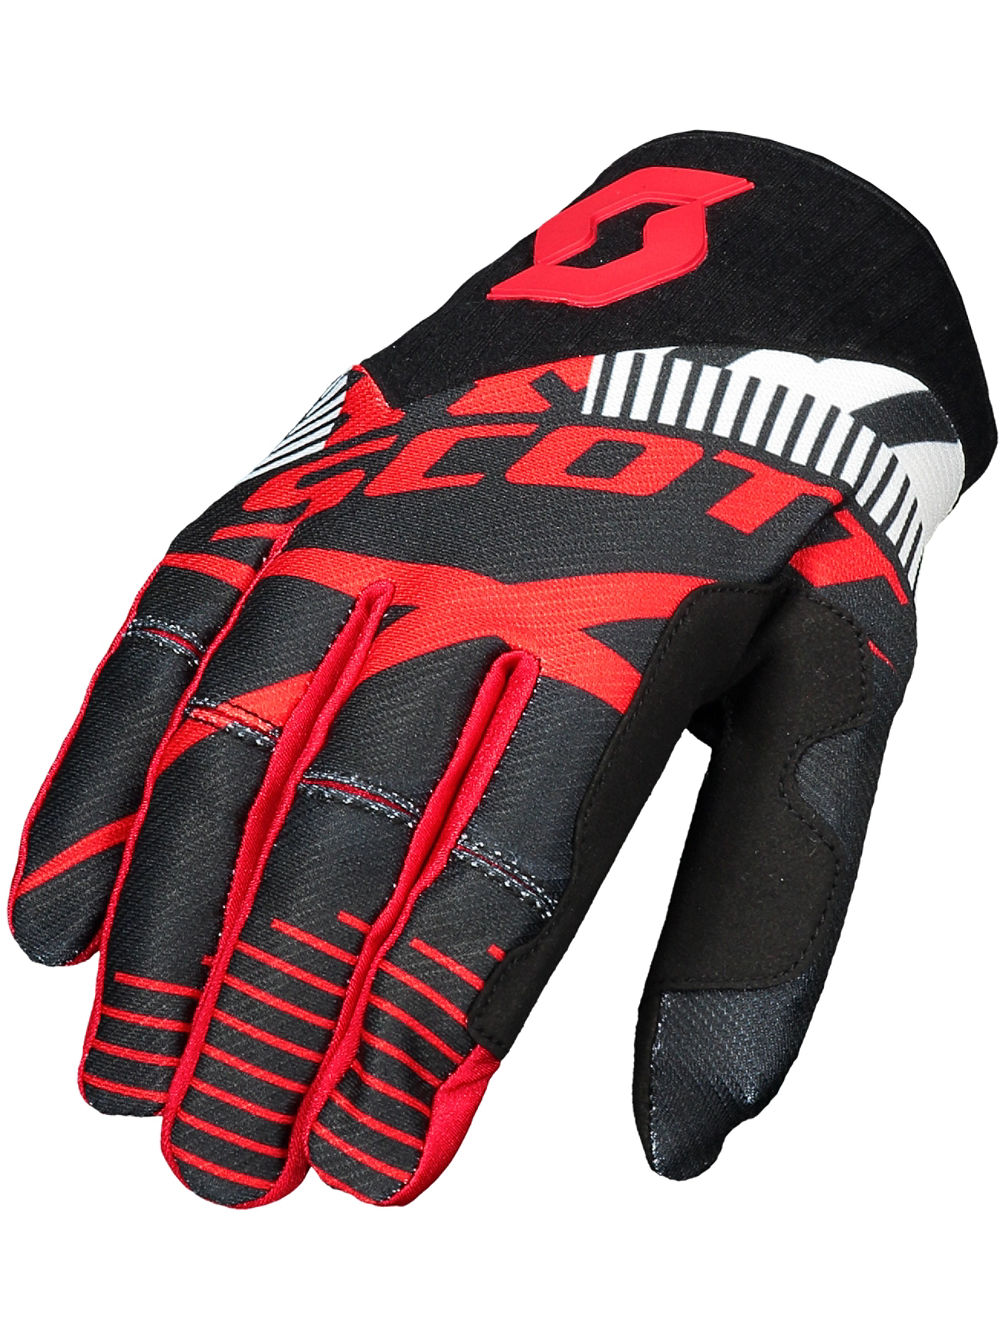 450 Patchwork Bike Gloves